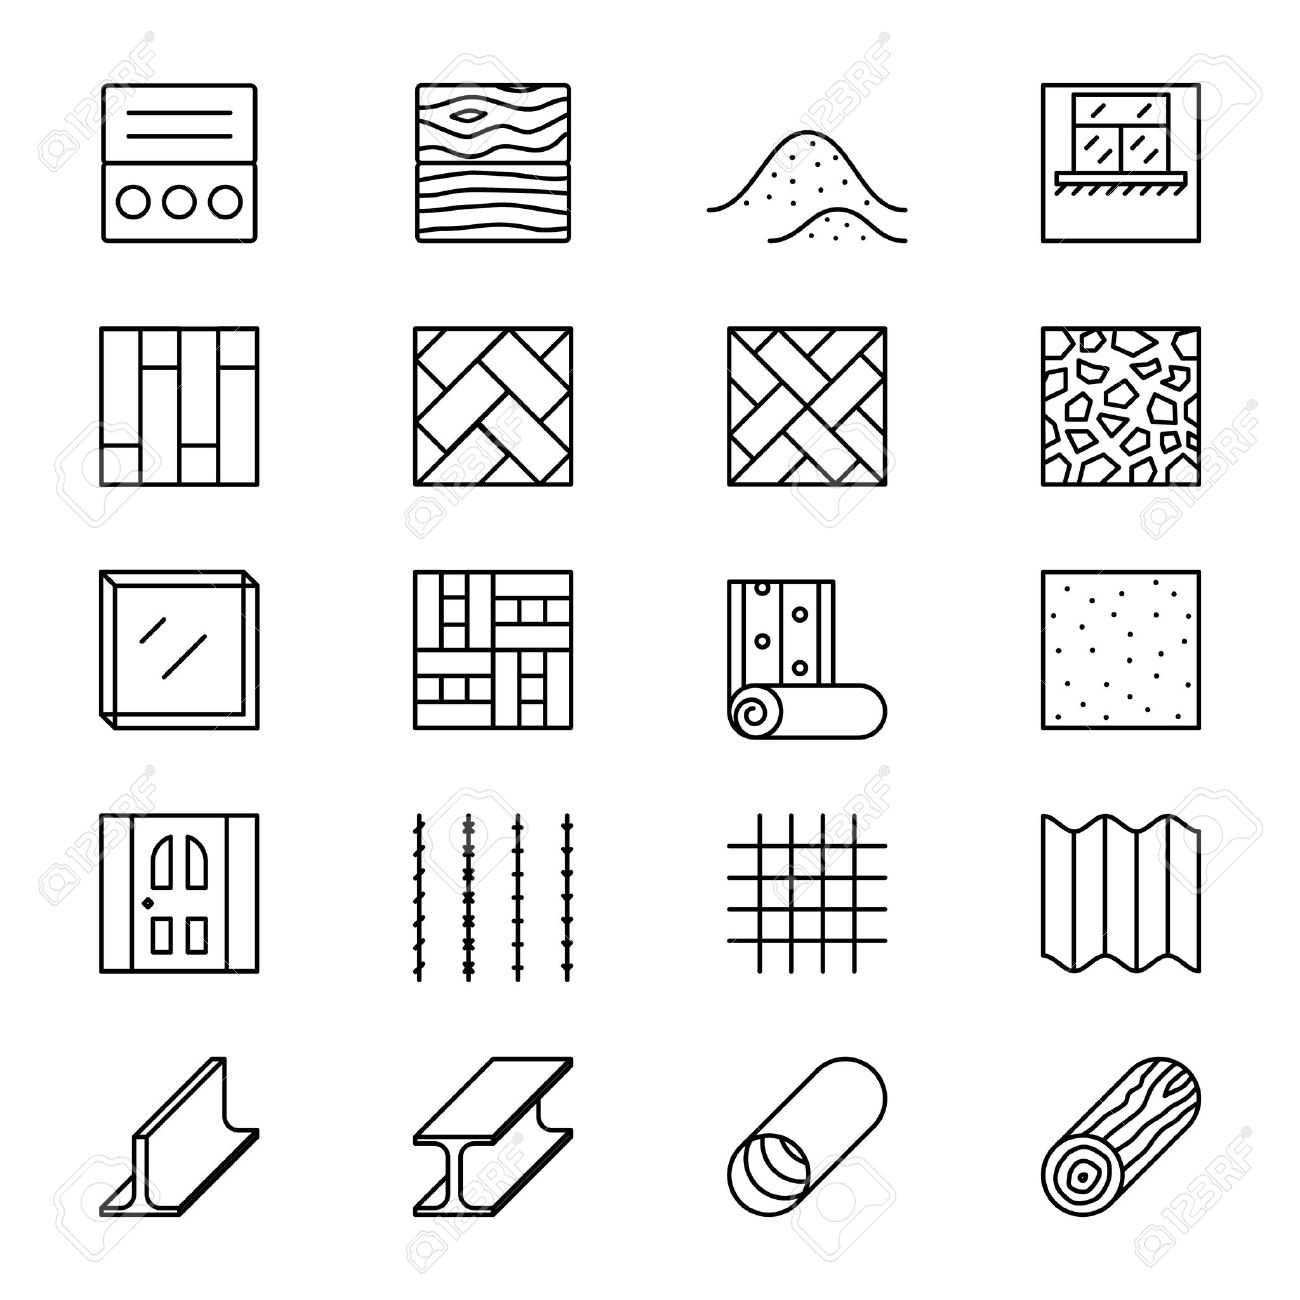 Building materials line vector icons. Building construction materials, element pictogram material, object materials linear illustration - 58737169